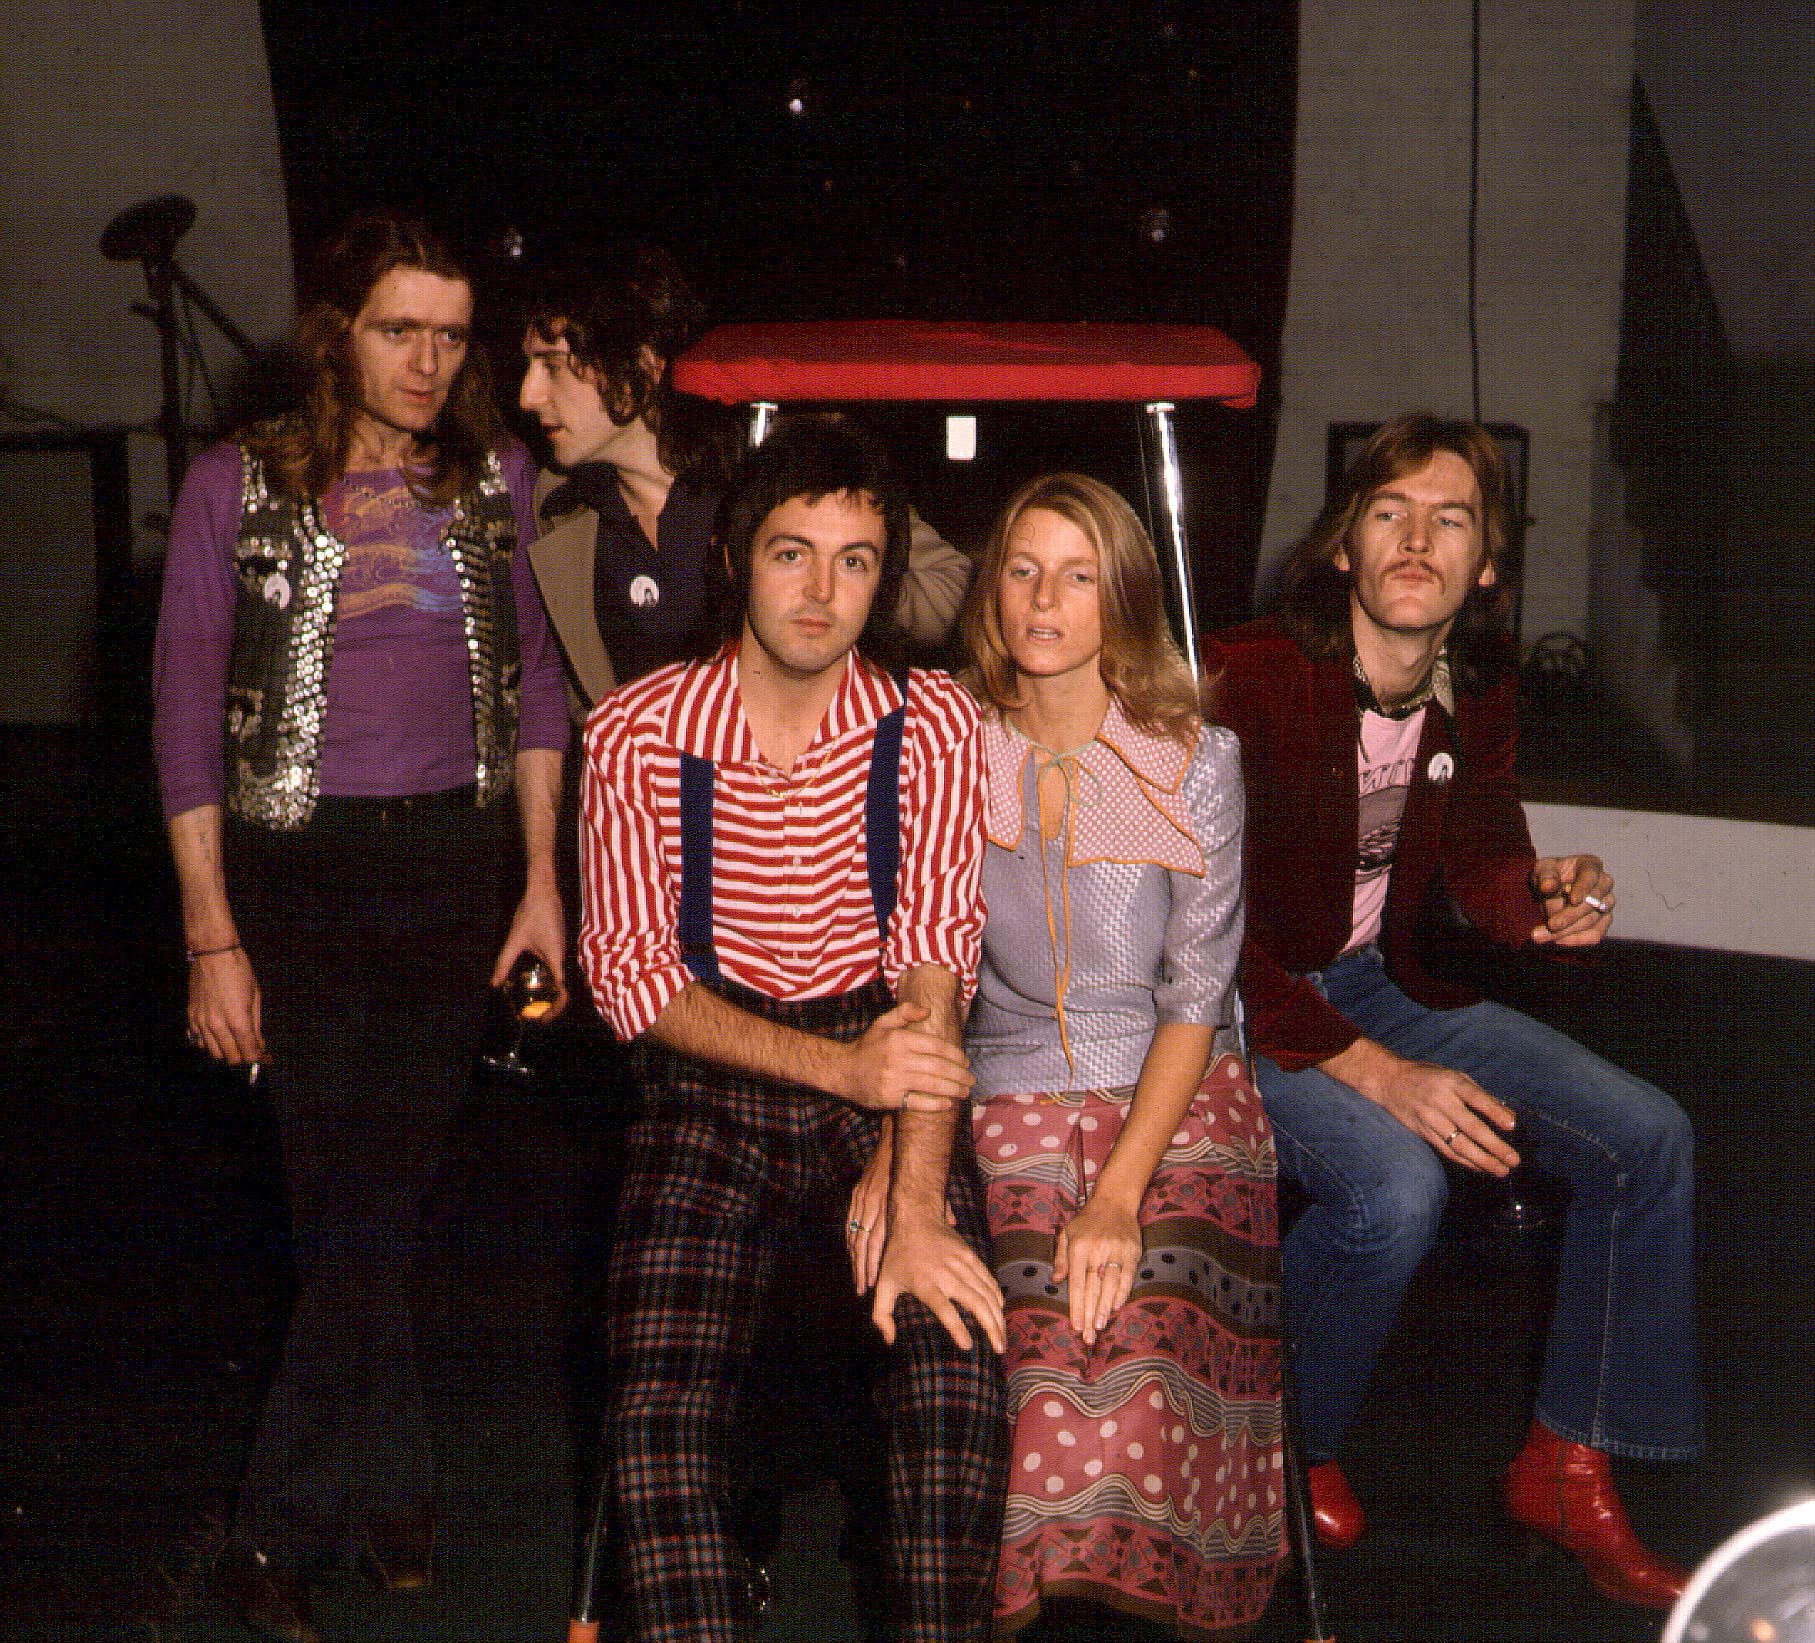 Henry McCullough, Paul McCartney and The Wings